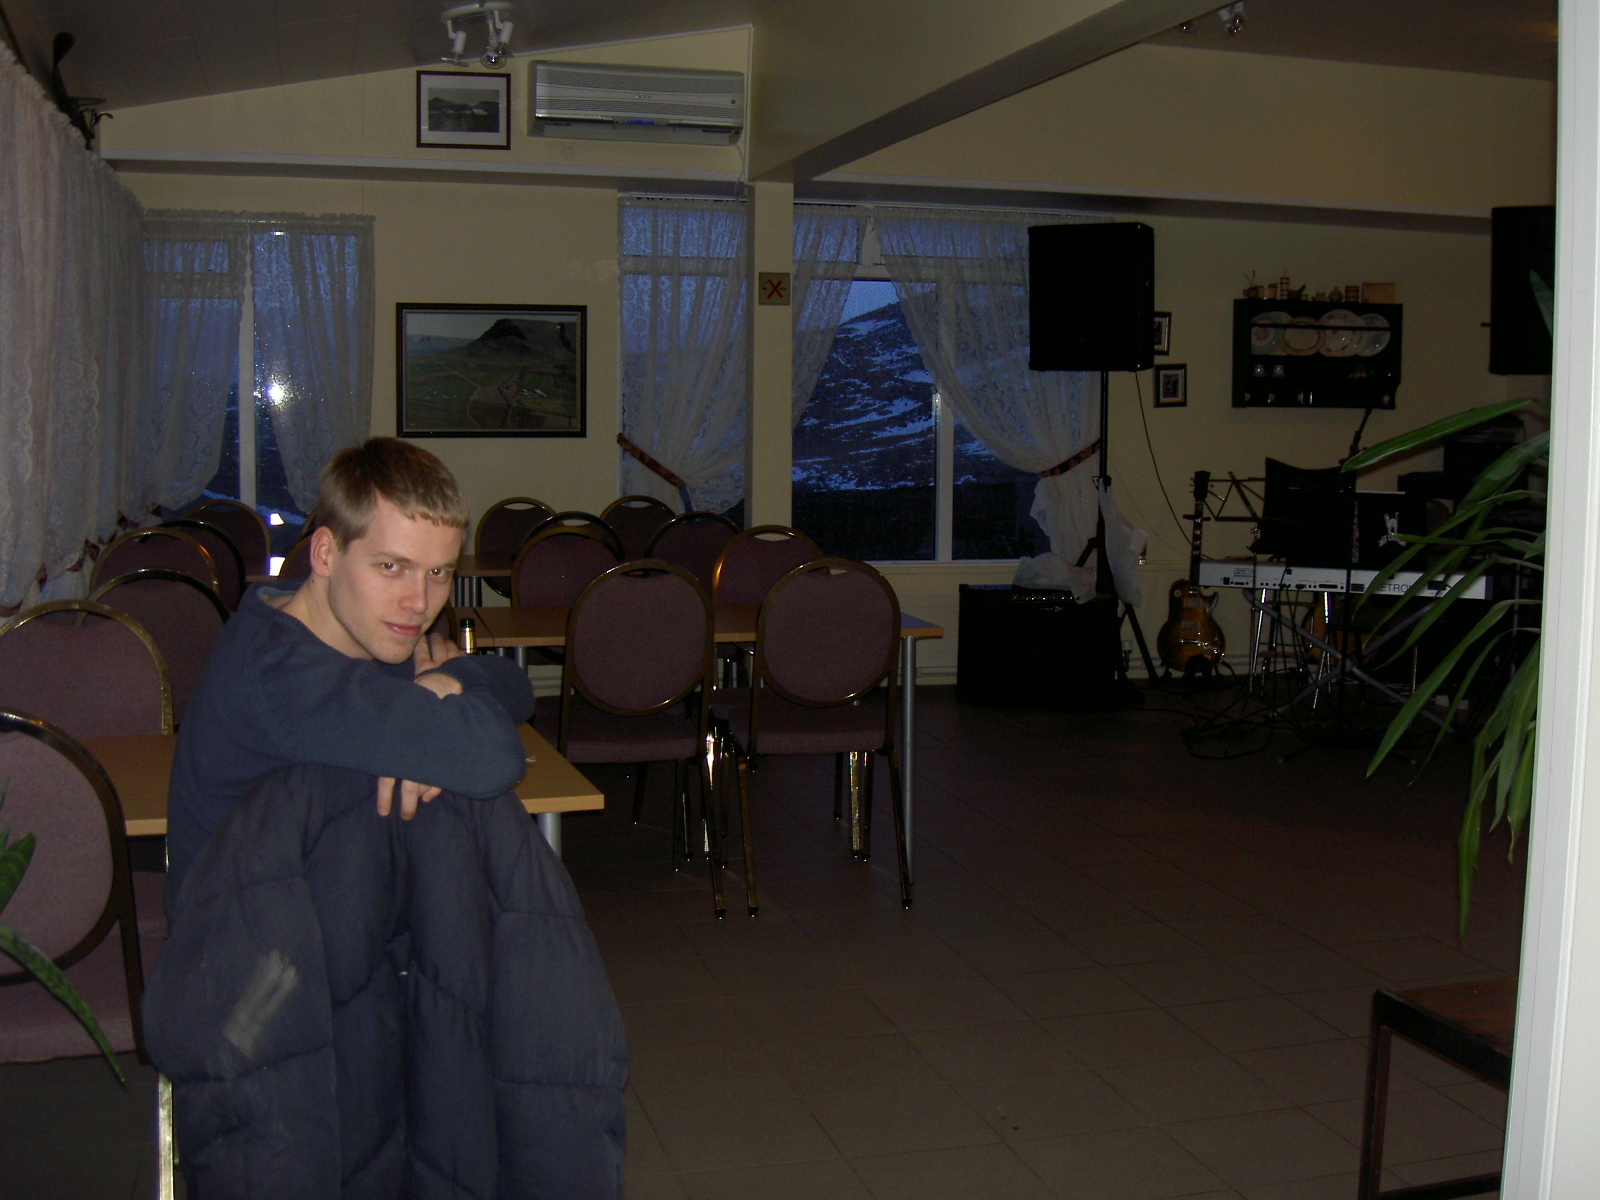 Bastiaan in the only cafe near Thurranes (purpose of page is to display an image)